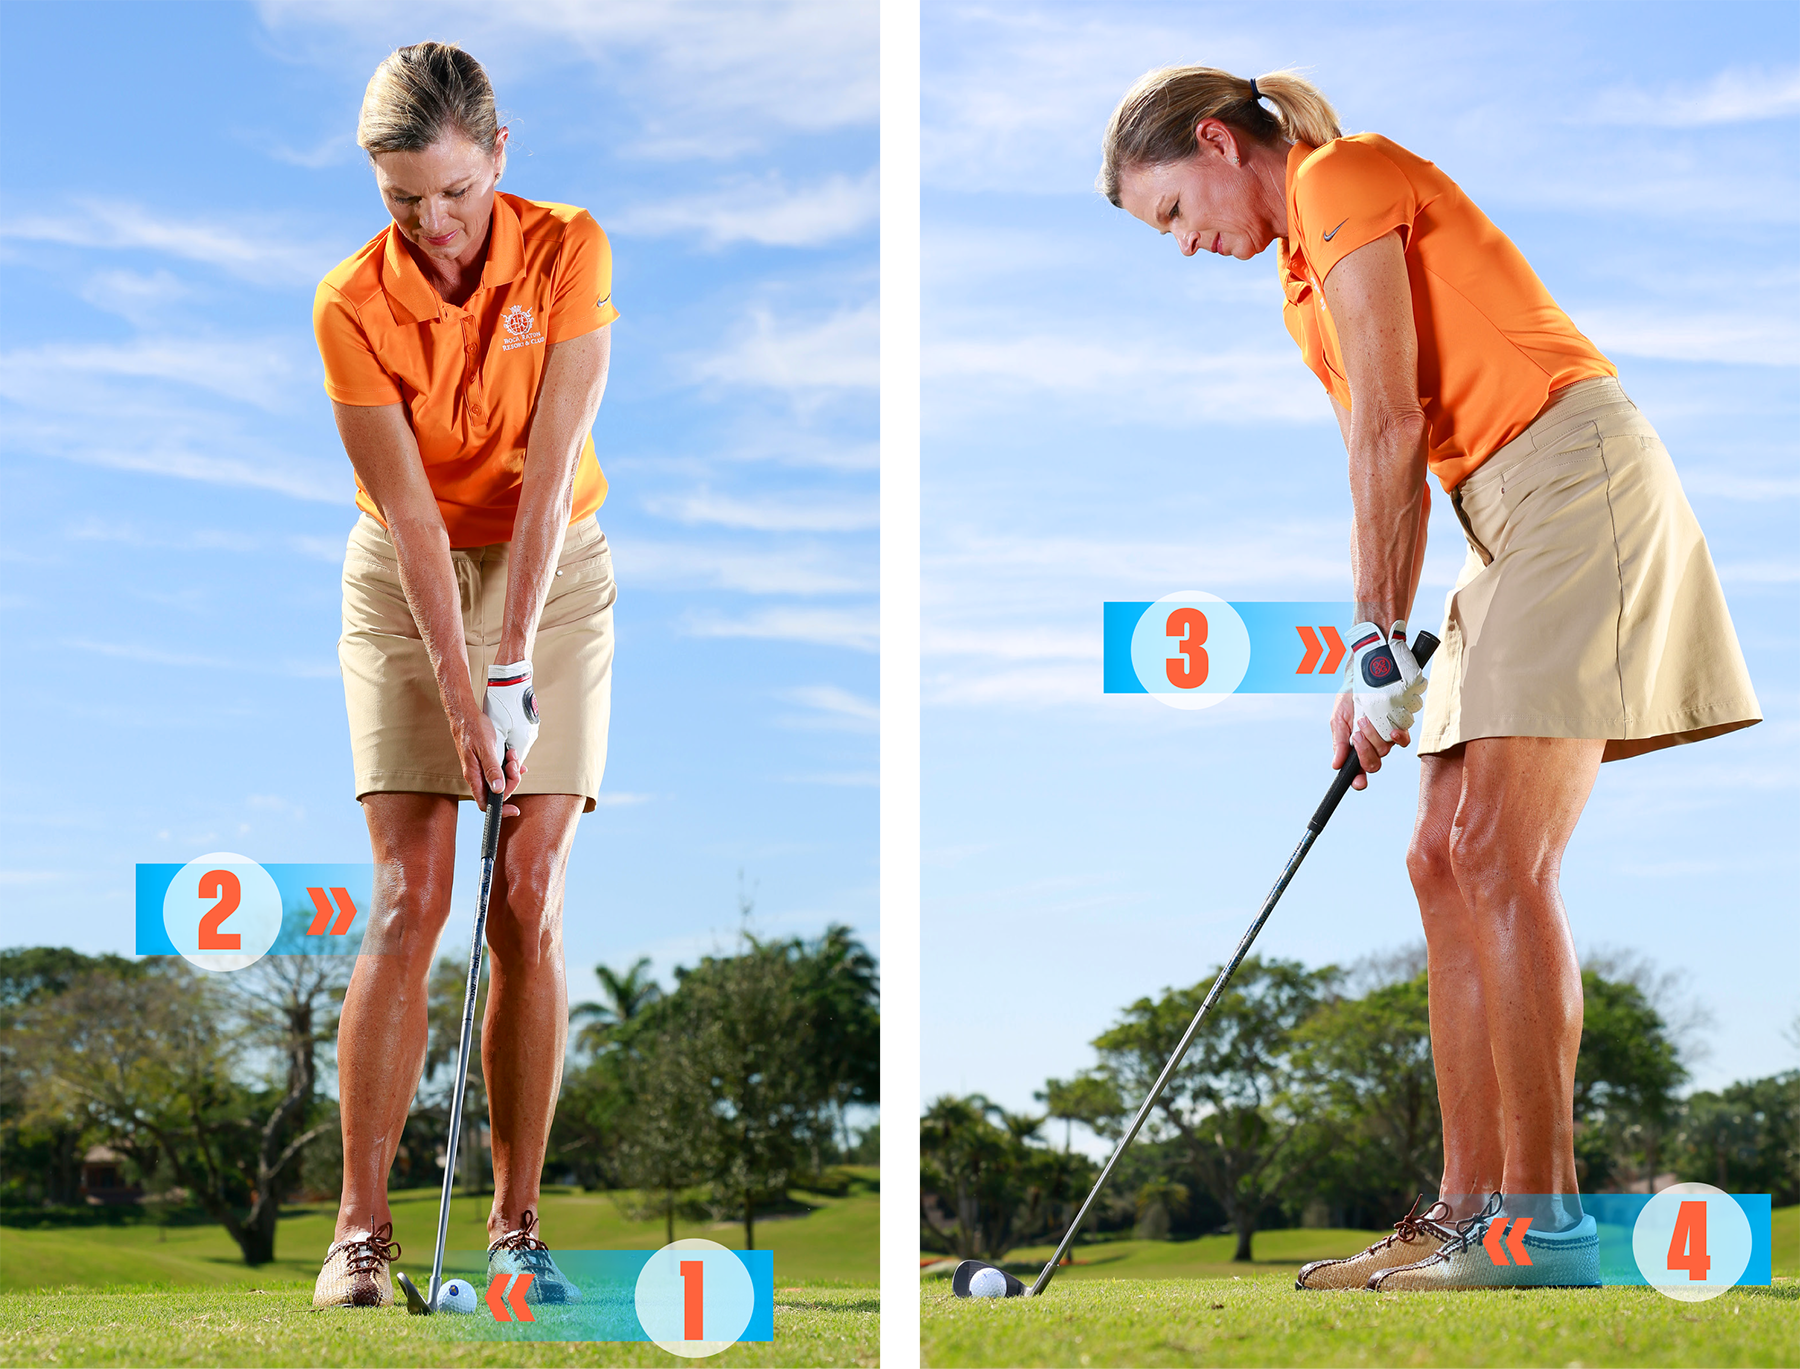 It takes but four tweaks to your normal setup to build the ultimate short-game stance.